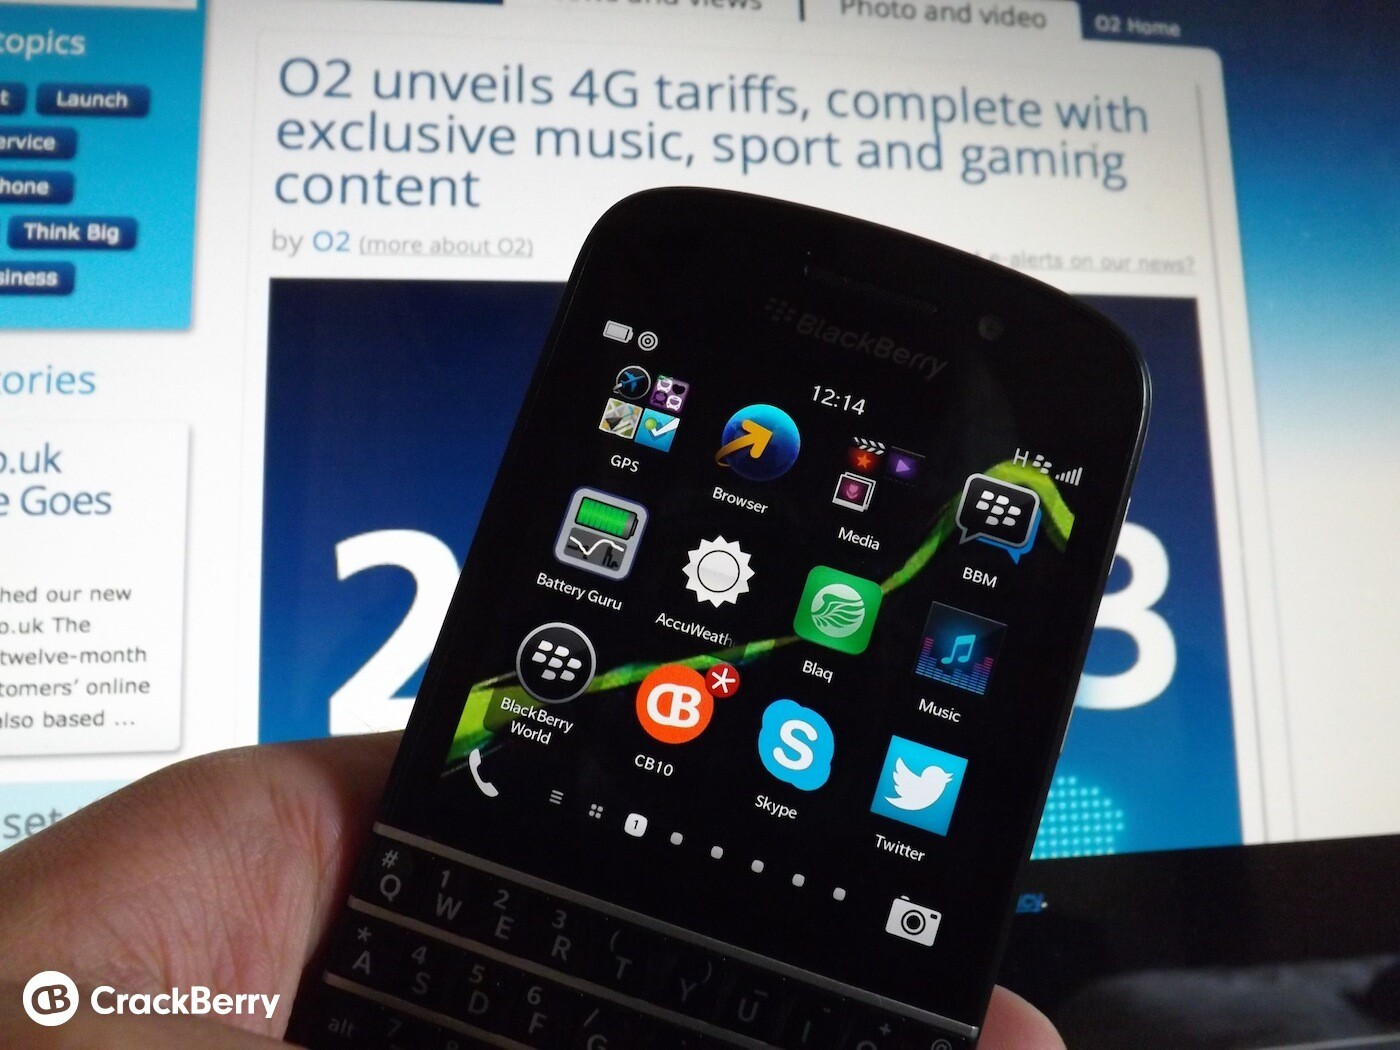 O2 In The Uk Confirm Their 4g Tariffs Perfect For Your Blackberry Q10 Lte We Posted A While Back That Would Be Launching Network At End Of August But Company Has Now Reveled Its Full List